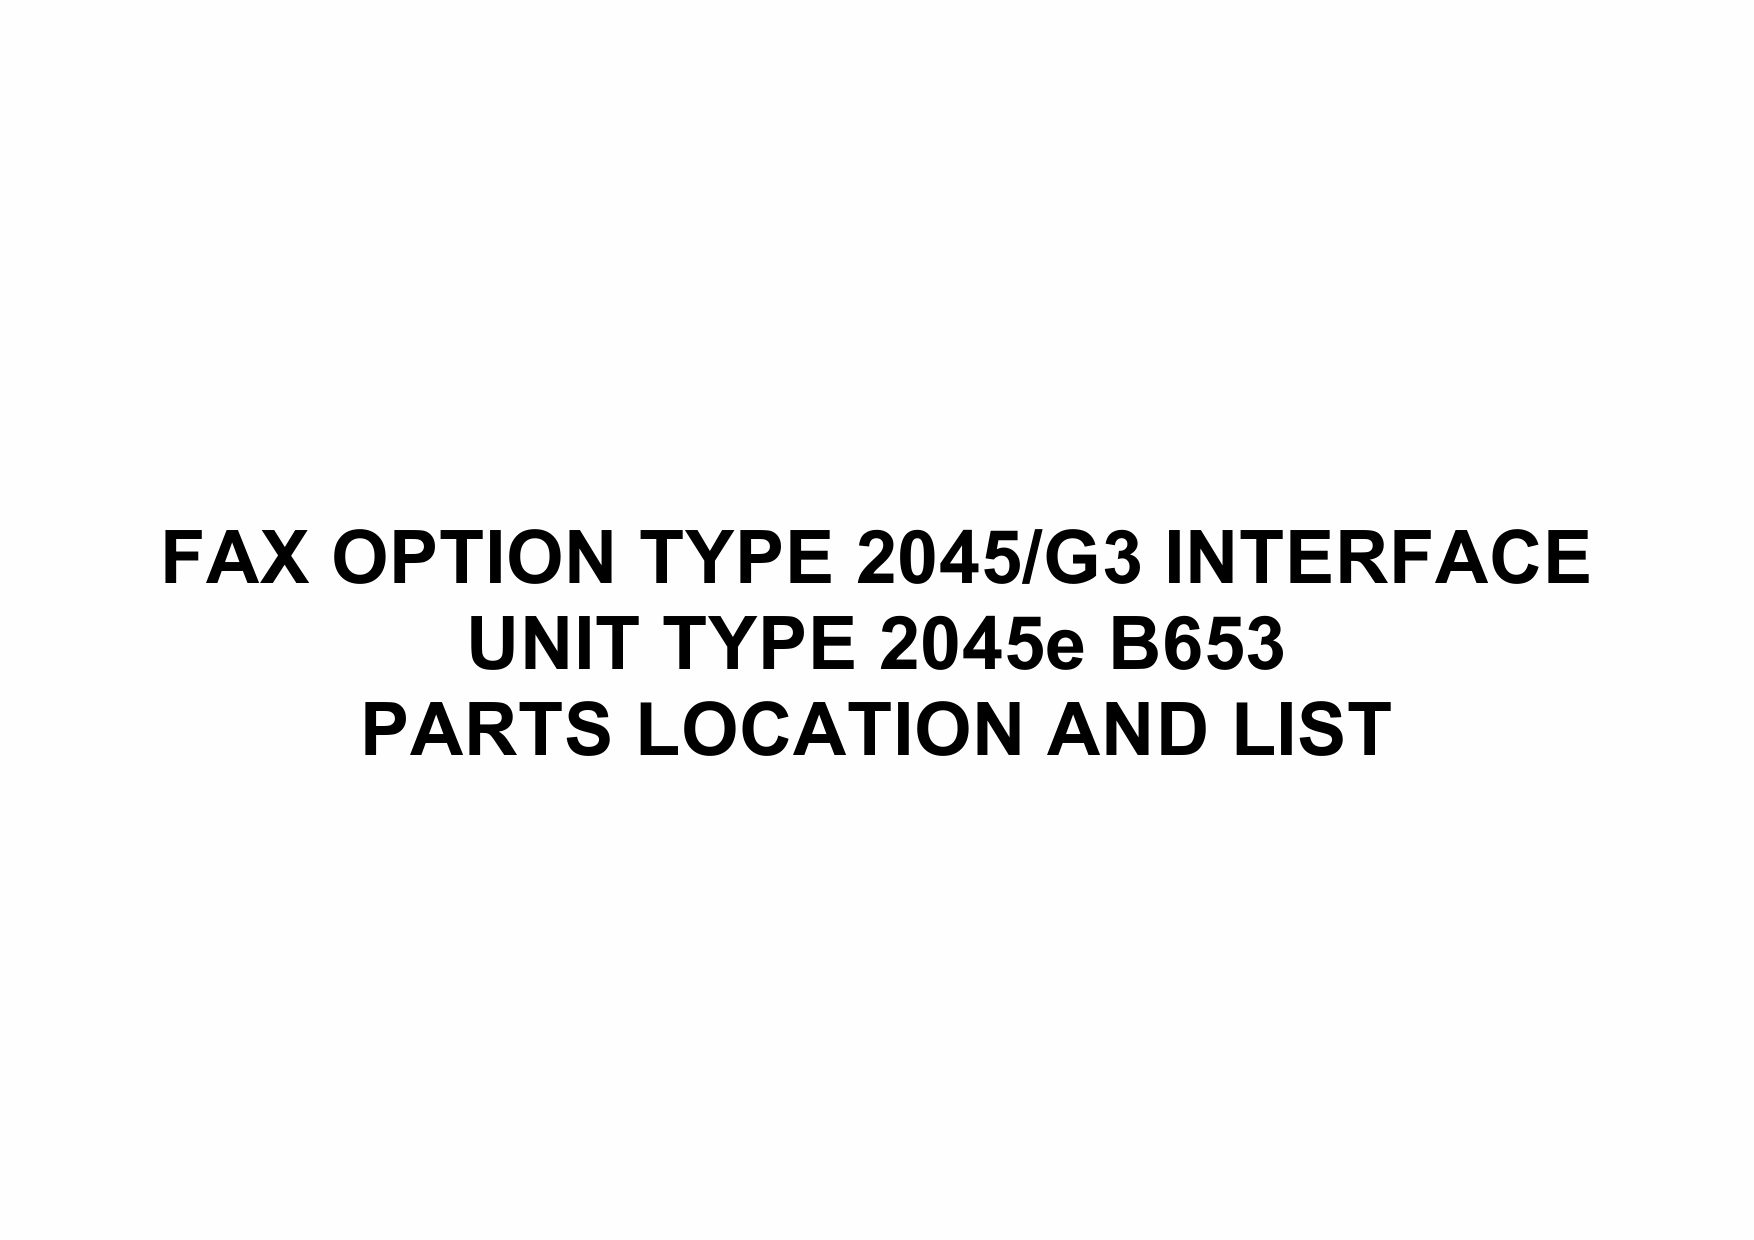 RICOH Options B653 FAX-OPTION-TYPE-2045 Parts Catalog PDF